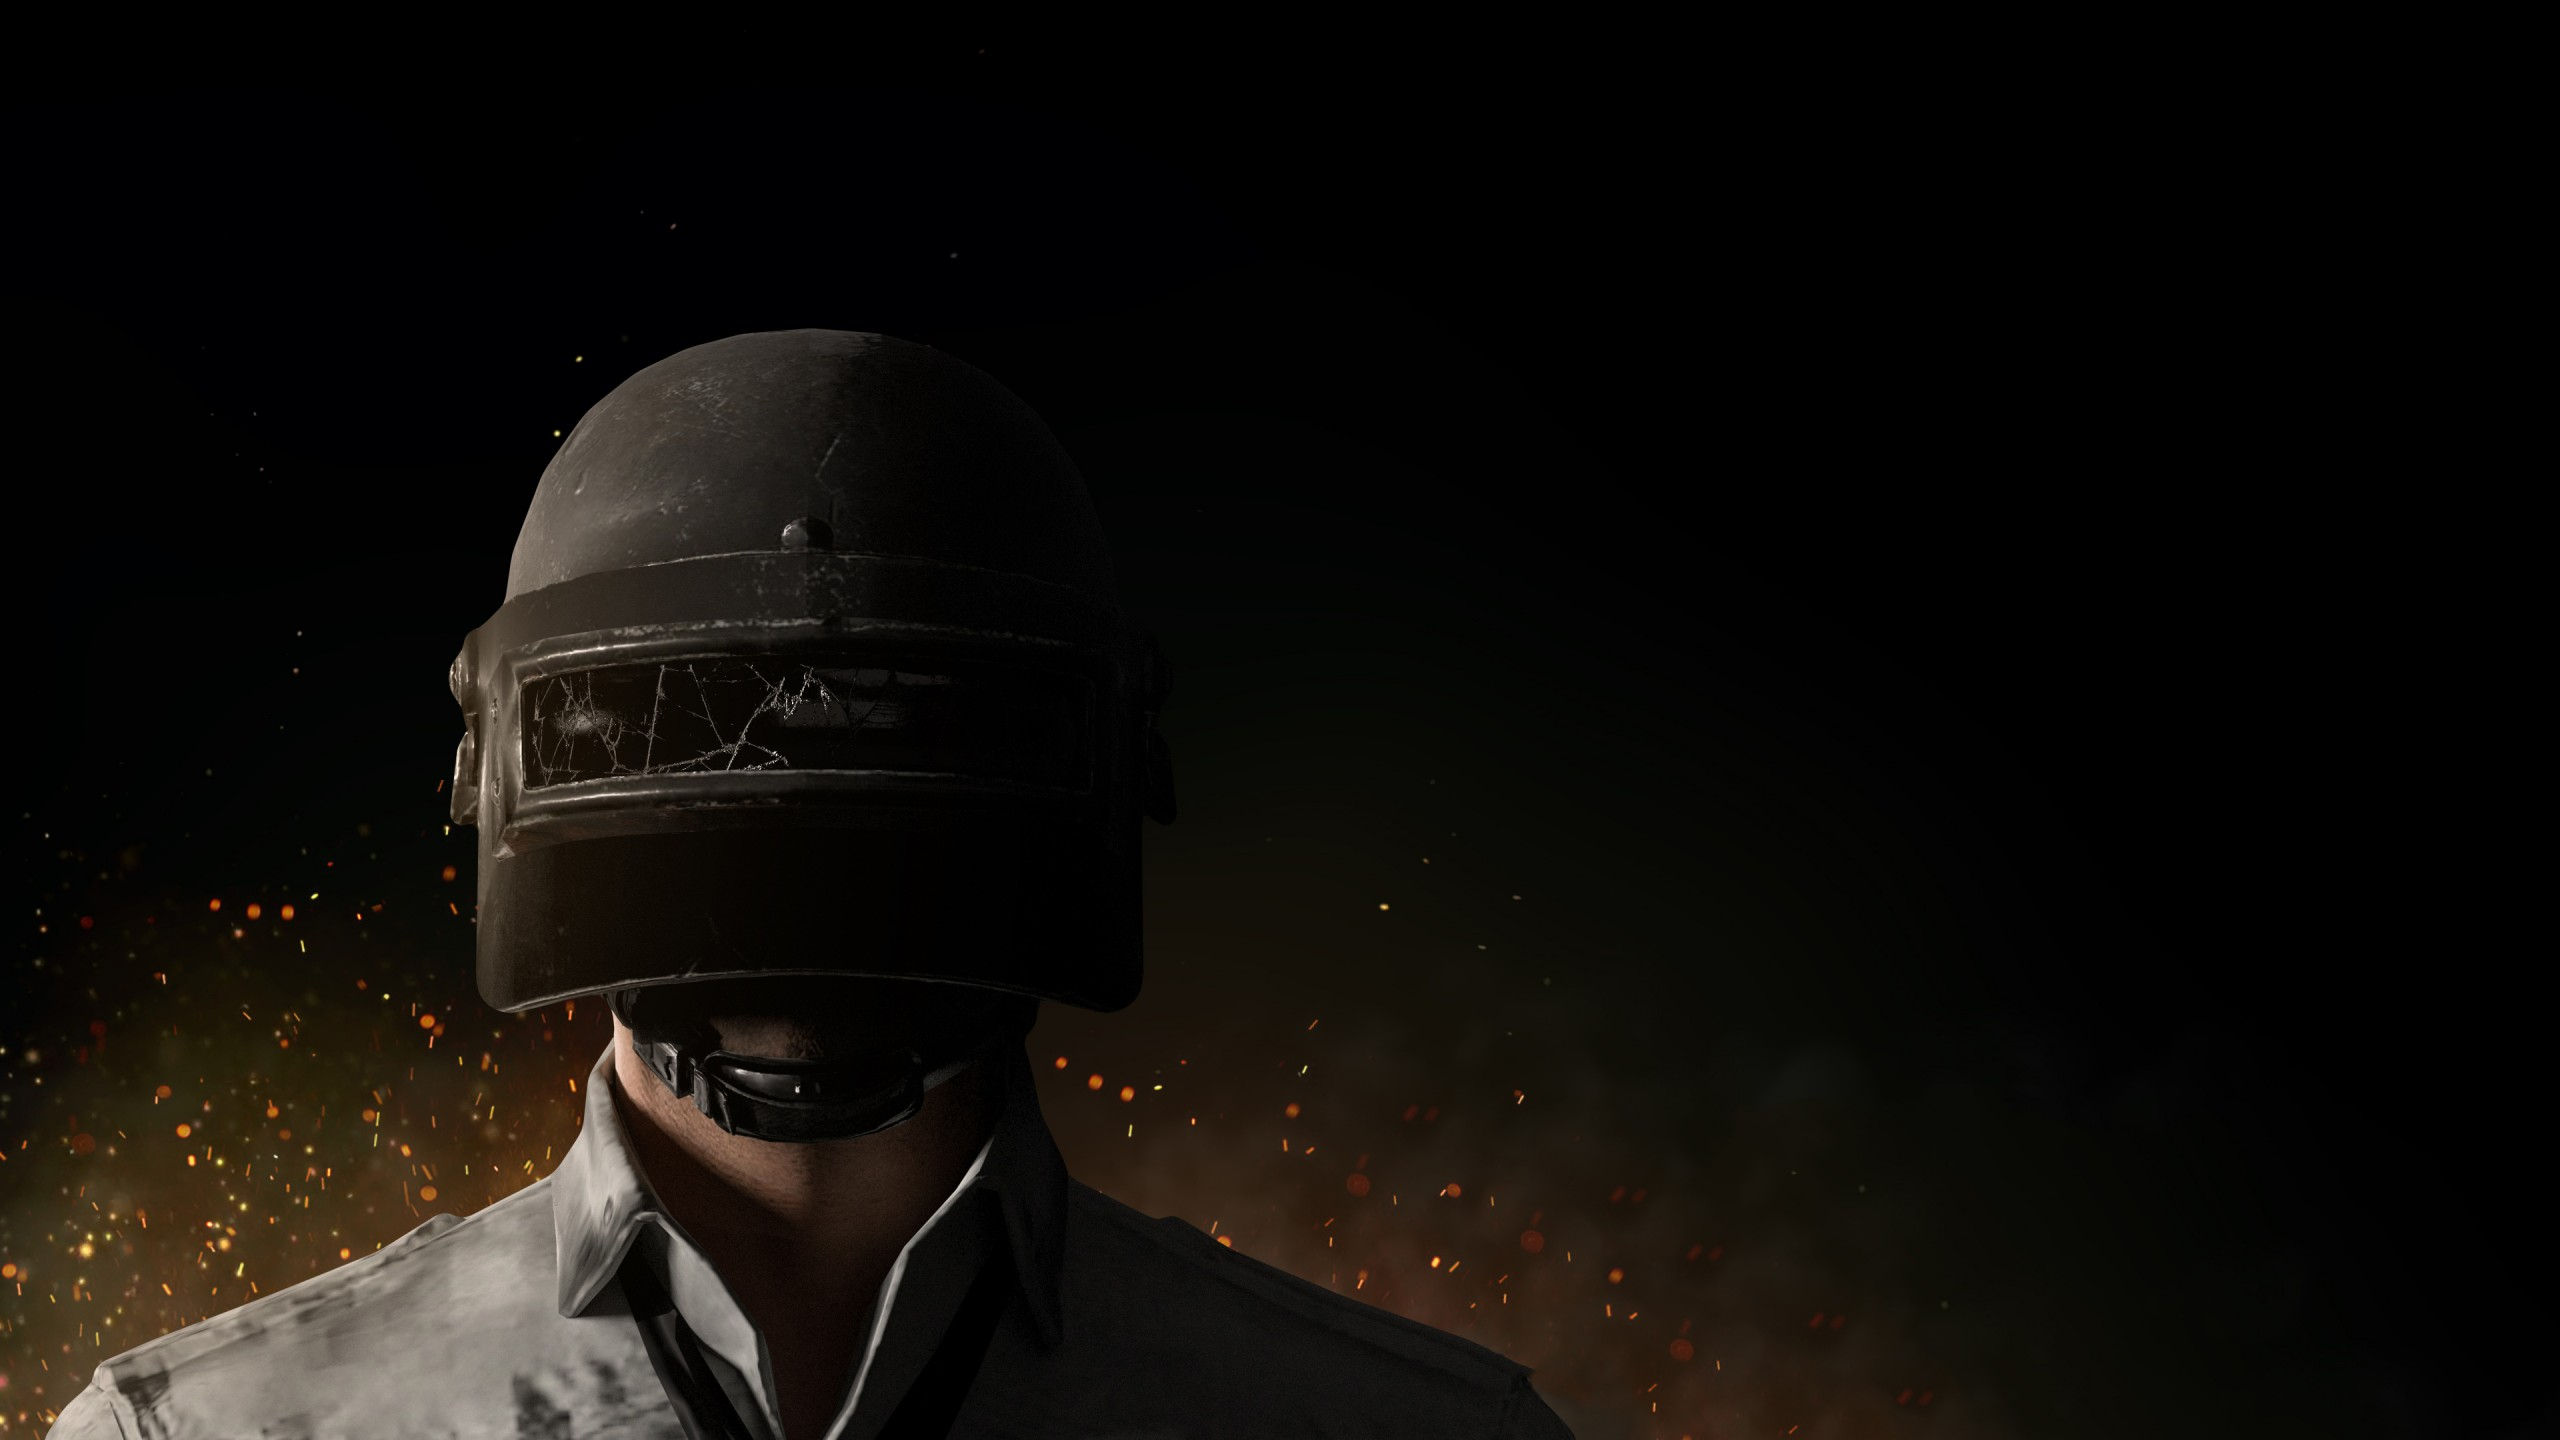 Pubg Wallpaper Pubg Level 3 Helmet Player 4k Wallpapers Hd Wallpapers